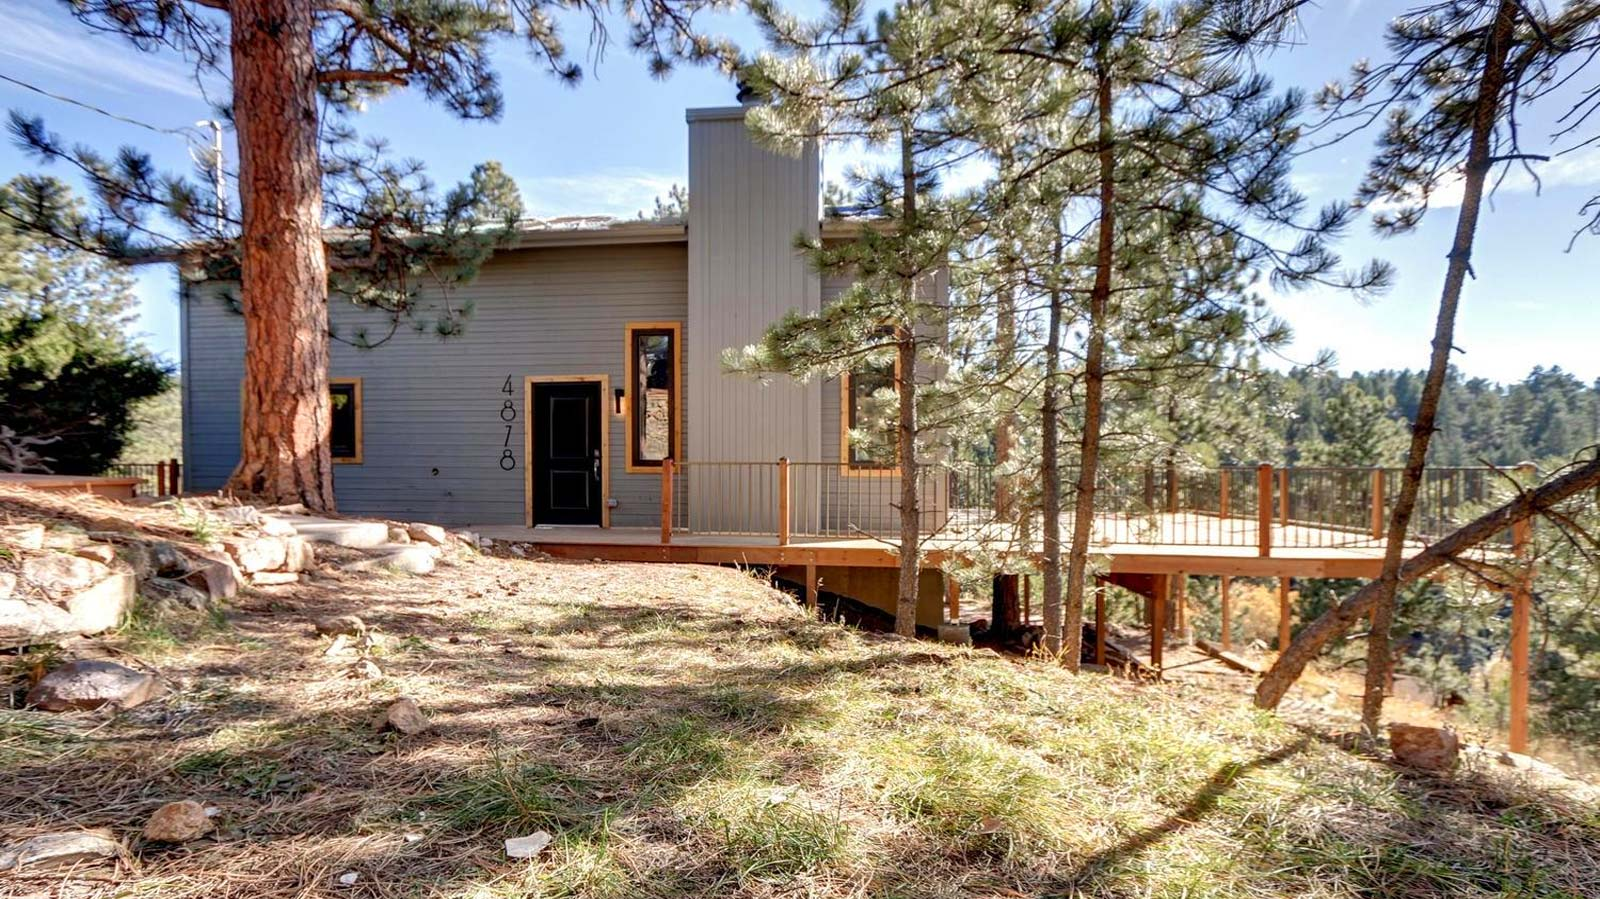 houses-for-sale-evergreen-co-4-1